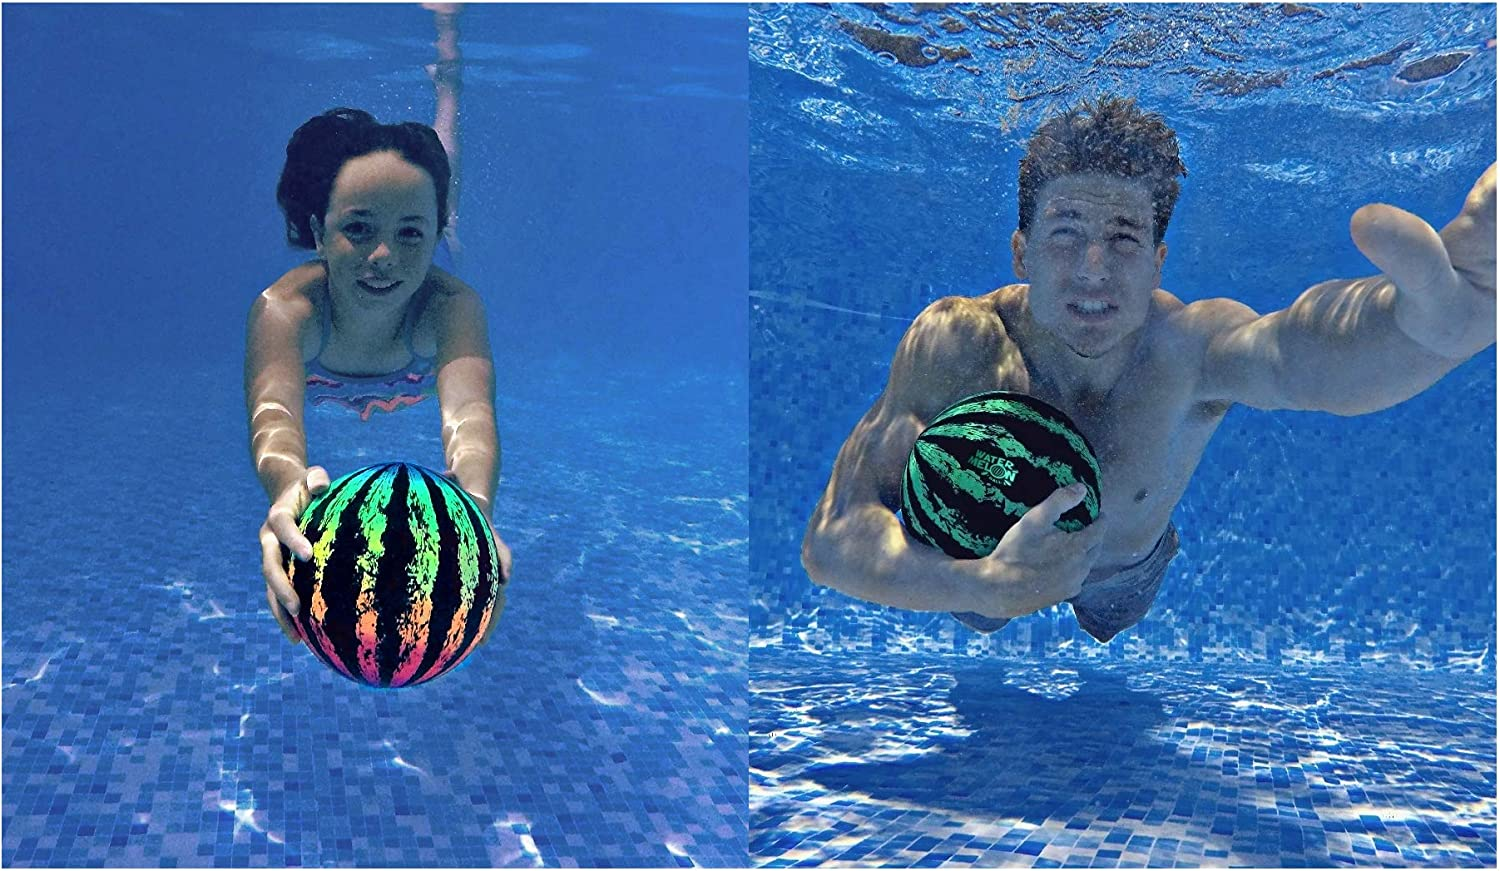 3 Pieces Watermelon Pool Ball Swimming Pool Ball Watermelon 6.5 Inch Ball Fills with Water with Hose Adapter for Underwater Passing Dribbling Diving Water Pool Games for Teens Adults